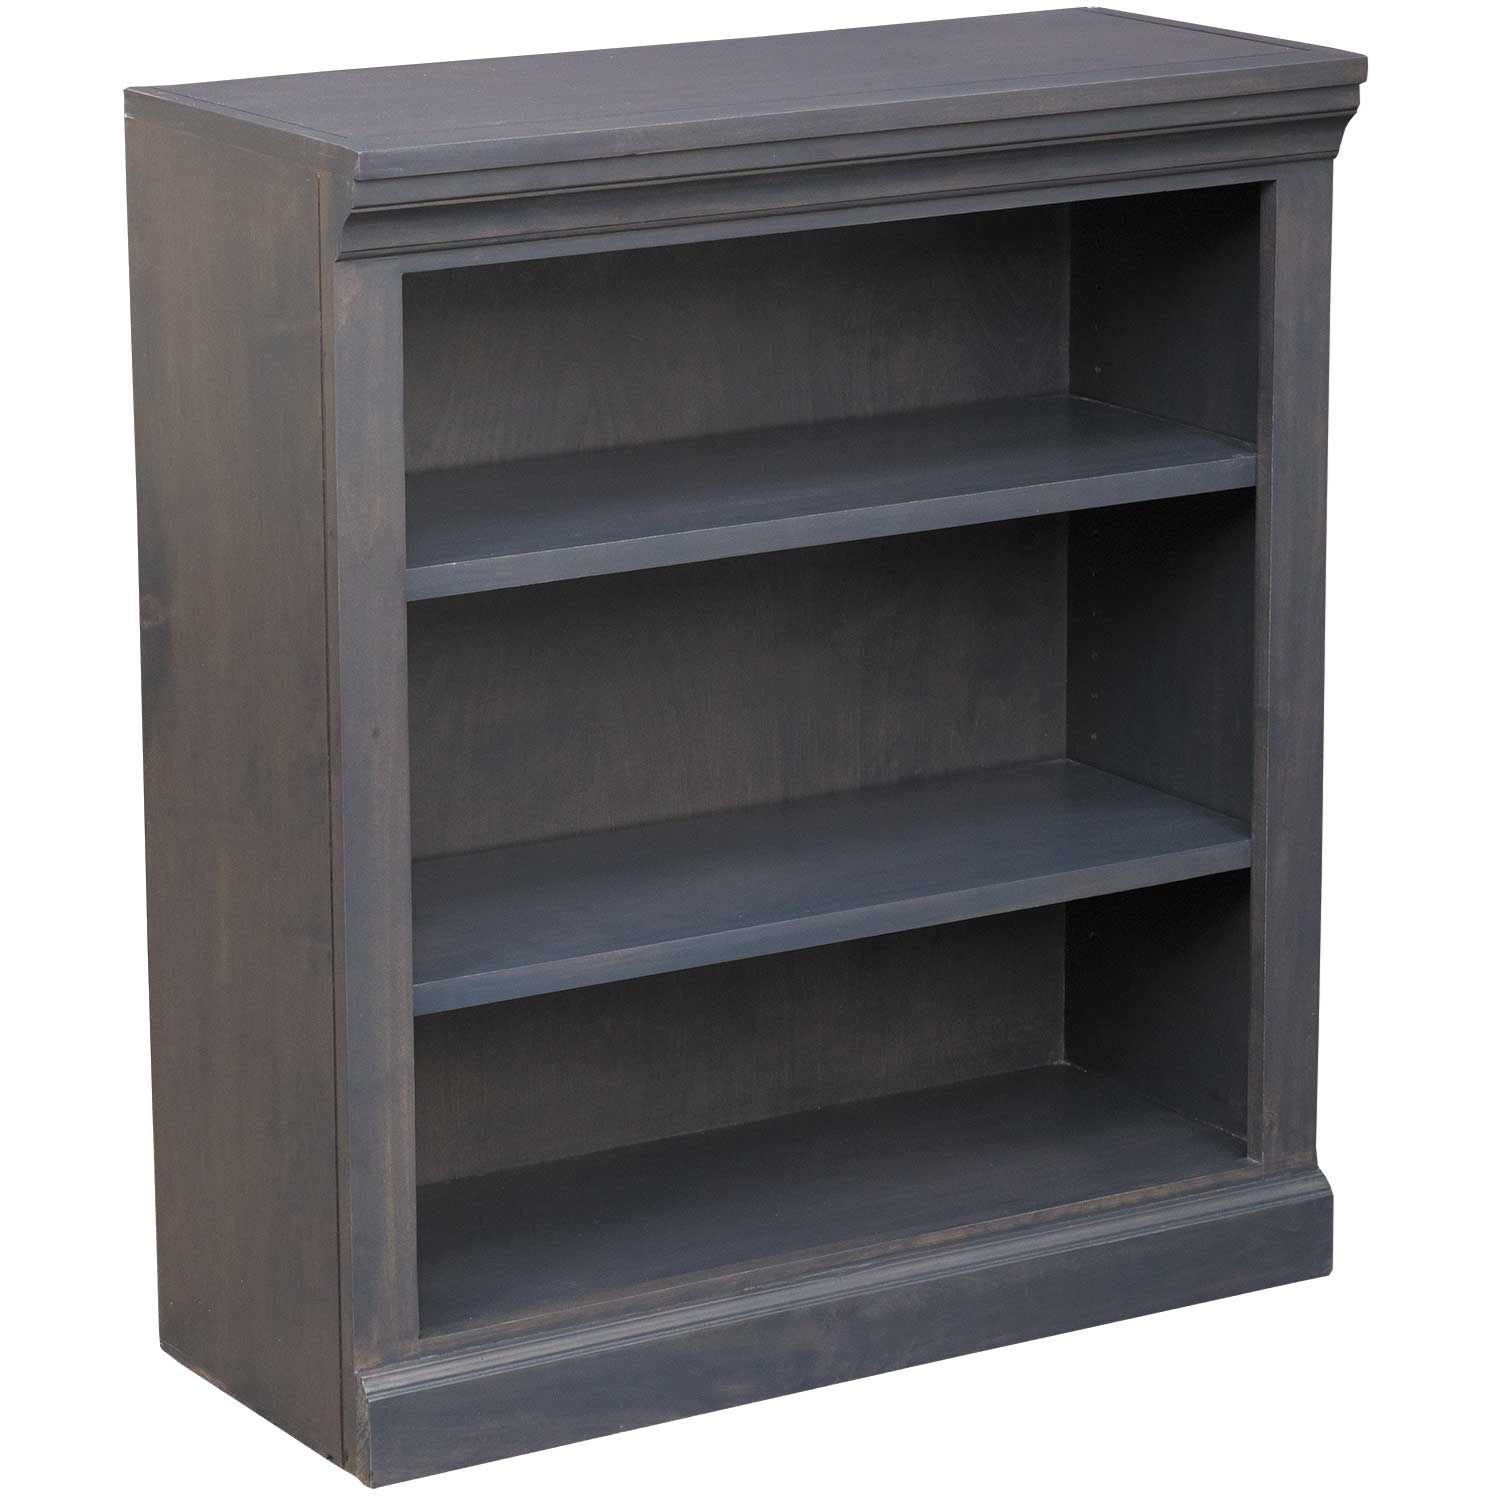 Picture of Platinum Grey Bookcase, 2 Shelf